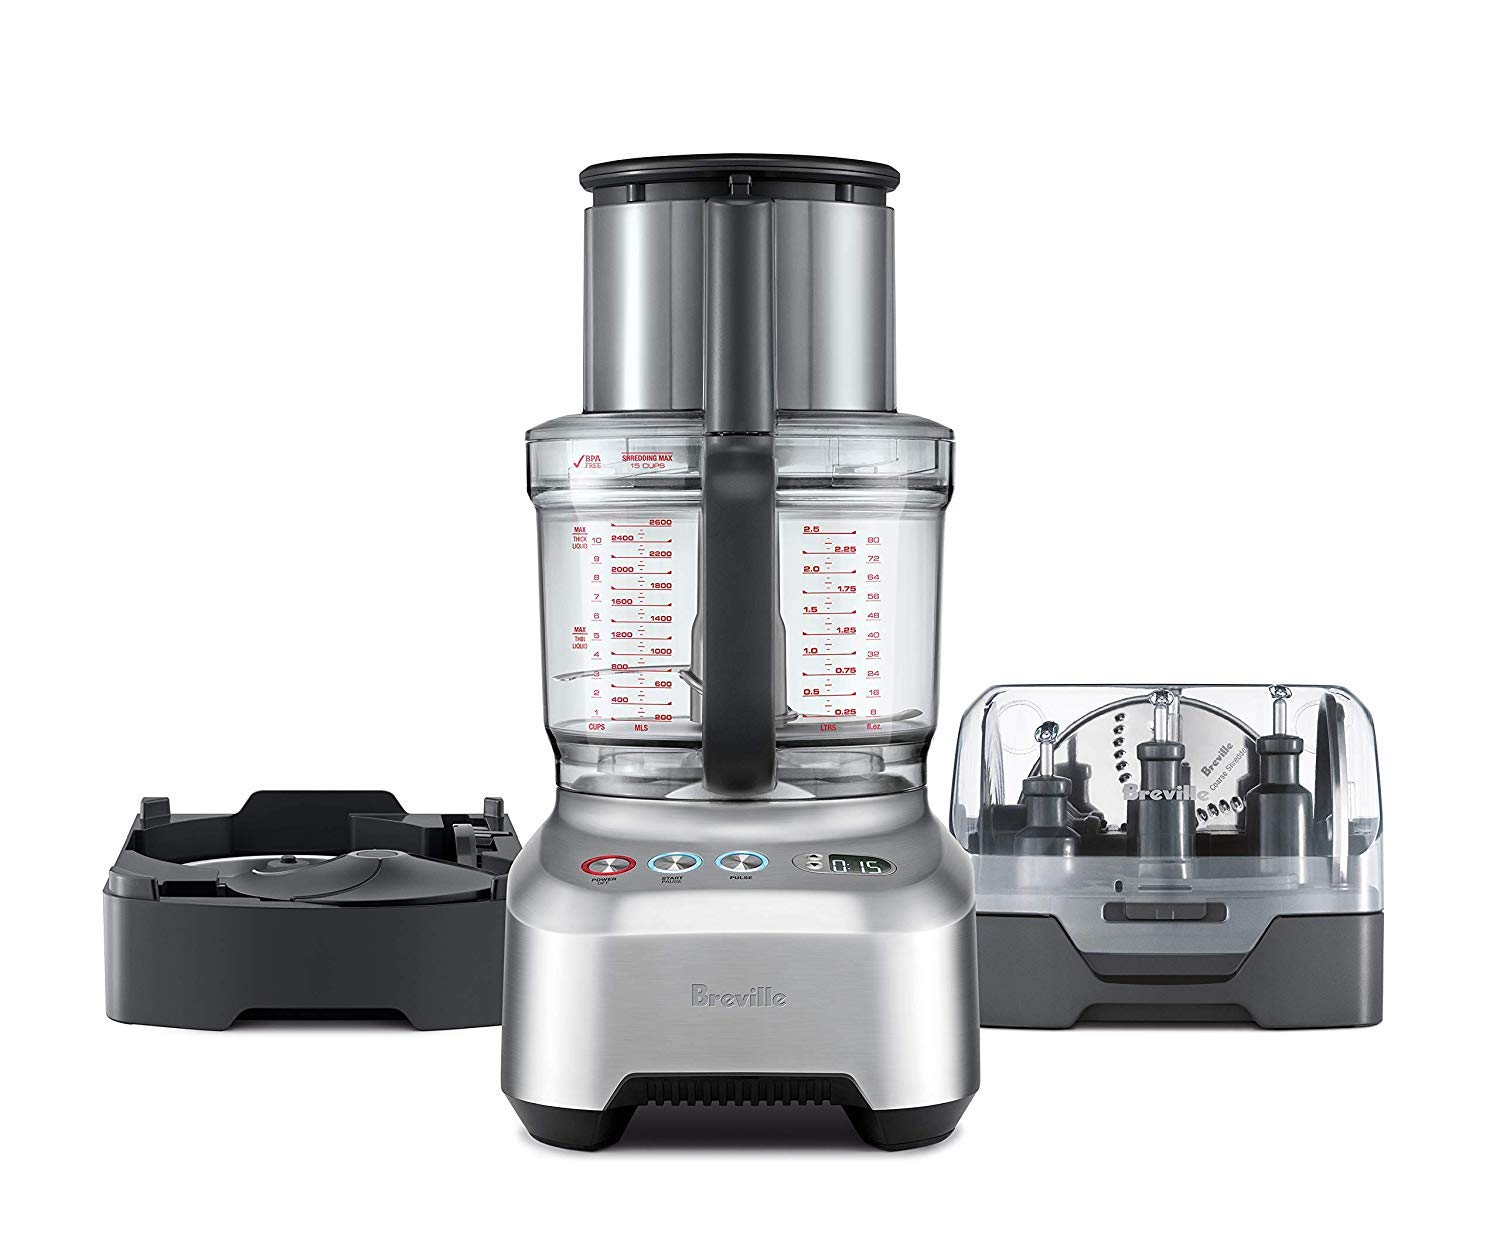 All In One Kitchen Appliance.Breville Sous Chef 16 Peel Dice All In One Food Processor Bundle W Peeling And 12mm Dicing Attachment Bfp820